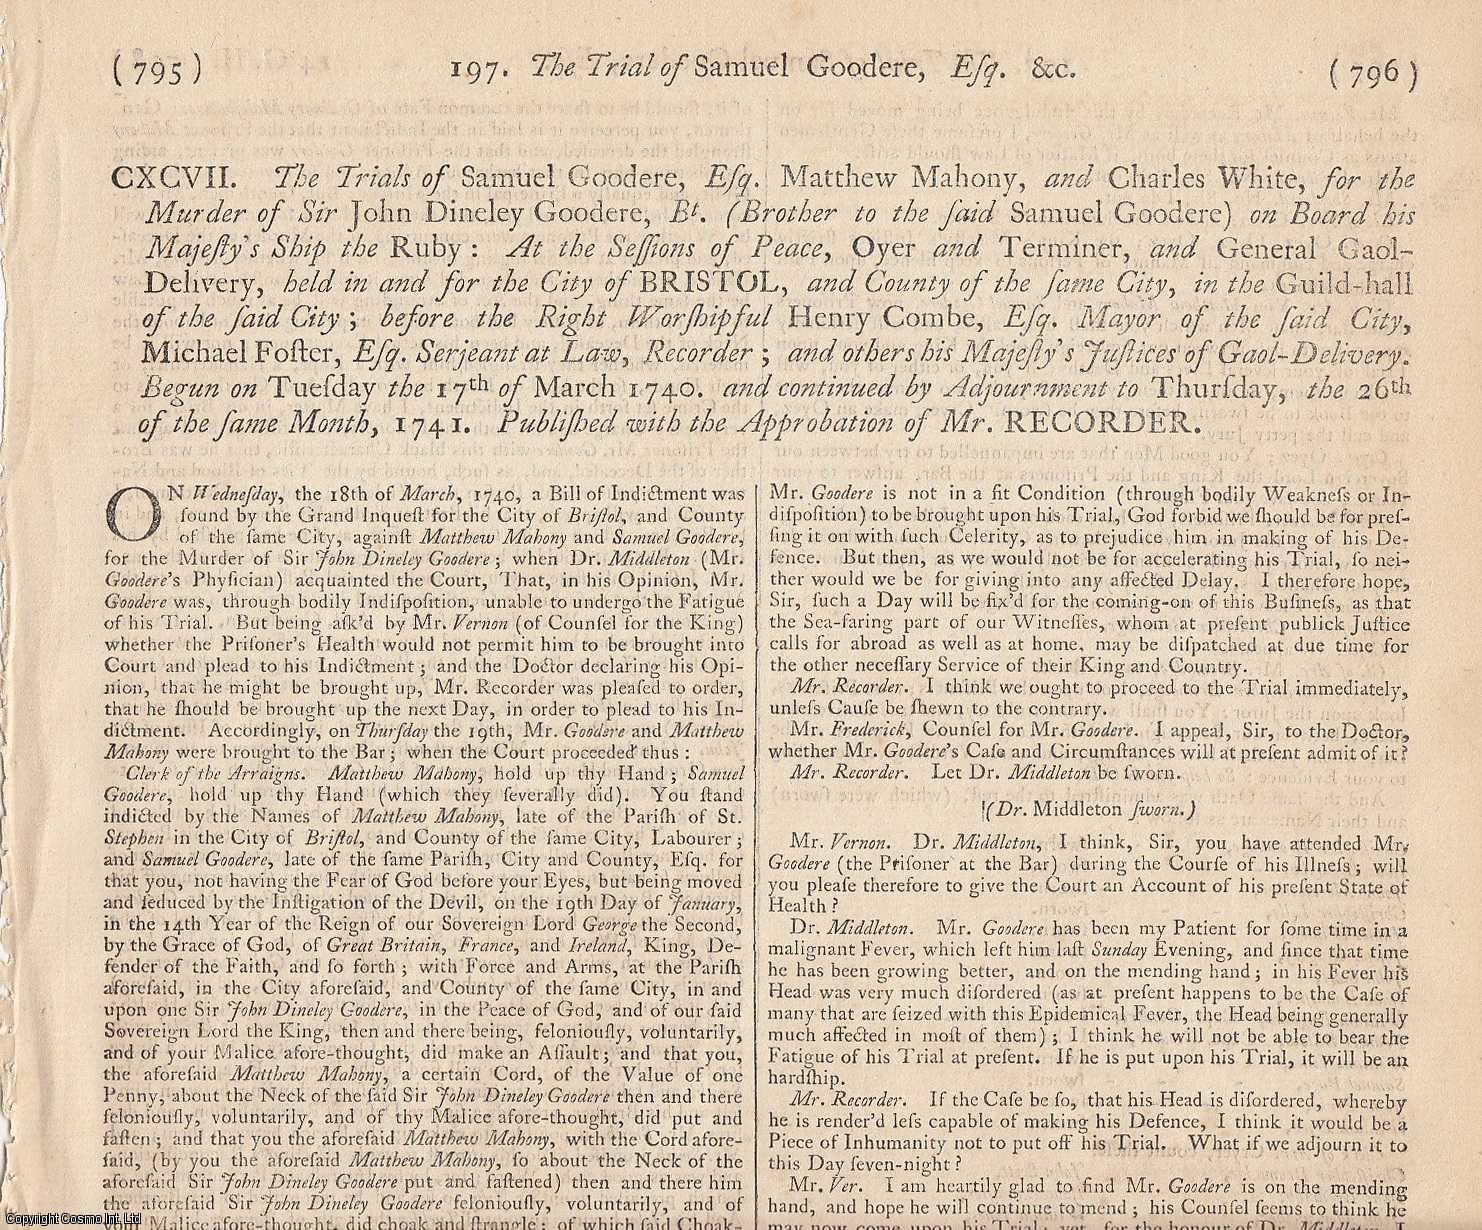 FRATRICIDE MURDER.  The Trials of Samuel Goodere, Esq., Matthew Mahony, and Charles White, for the Murder of Sir John Dineley Goodere, Bt. (Brother to the said Samuel Goodere) on Board his Majesty's Ship the Ruby. Begun on Tuesday the 17th March 1740. Published with the Approbation of Mr. Recorder., [Trial].